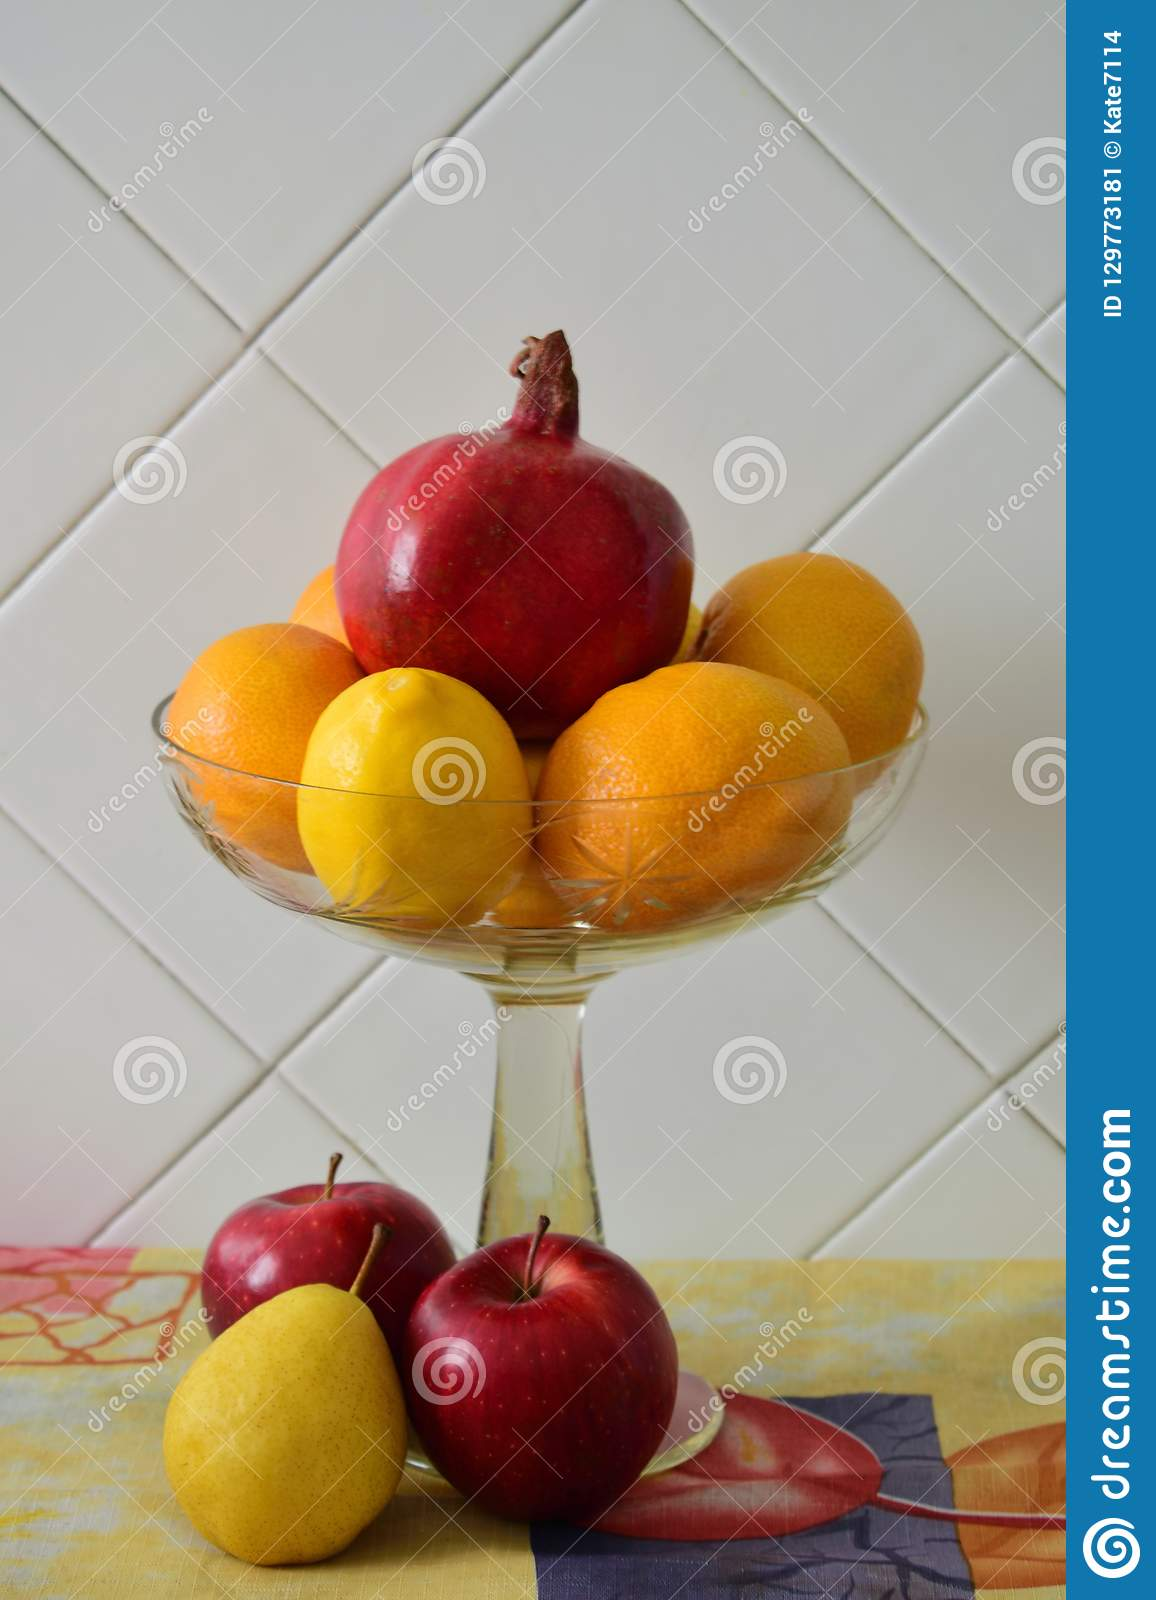 Still life in a transparent glass vase with red pomegranate, tangerines, lemon and apple